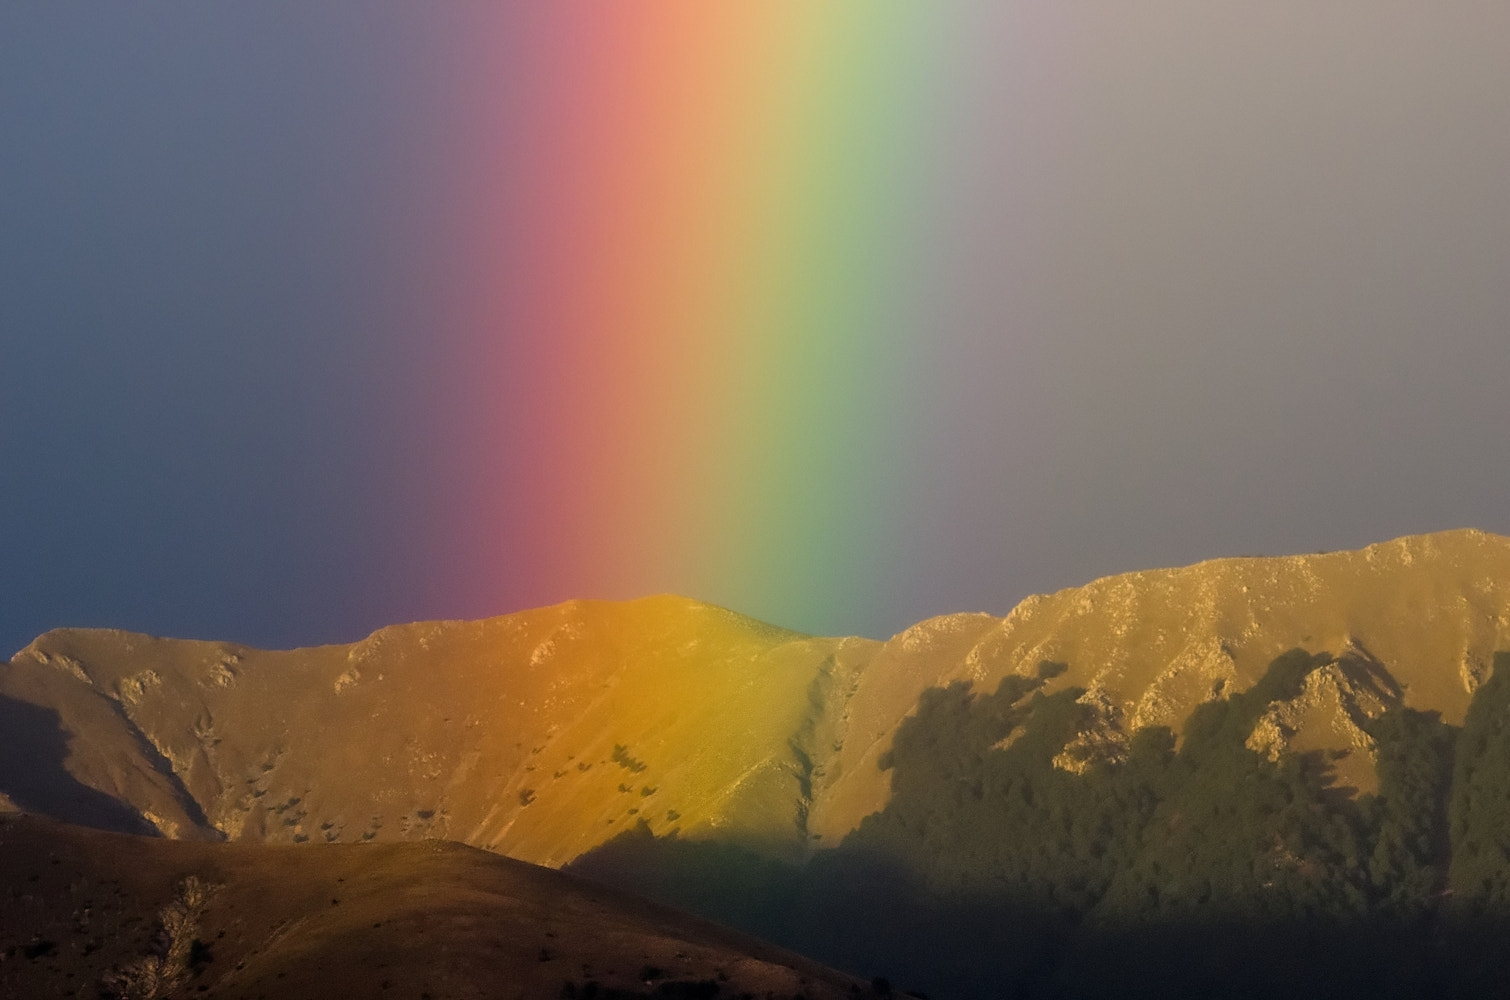 Photograph Qui nasce l'arcobaleno / Here born the rainbow by Federico Tomasello on 500px